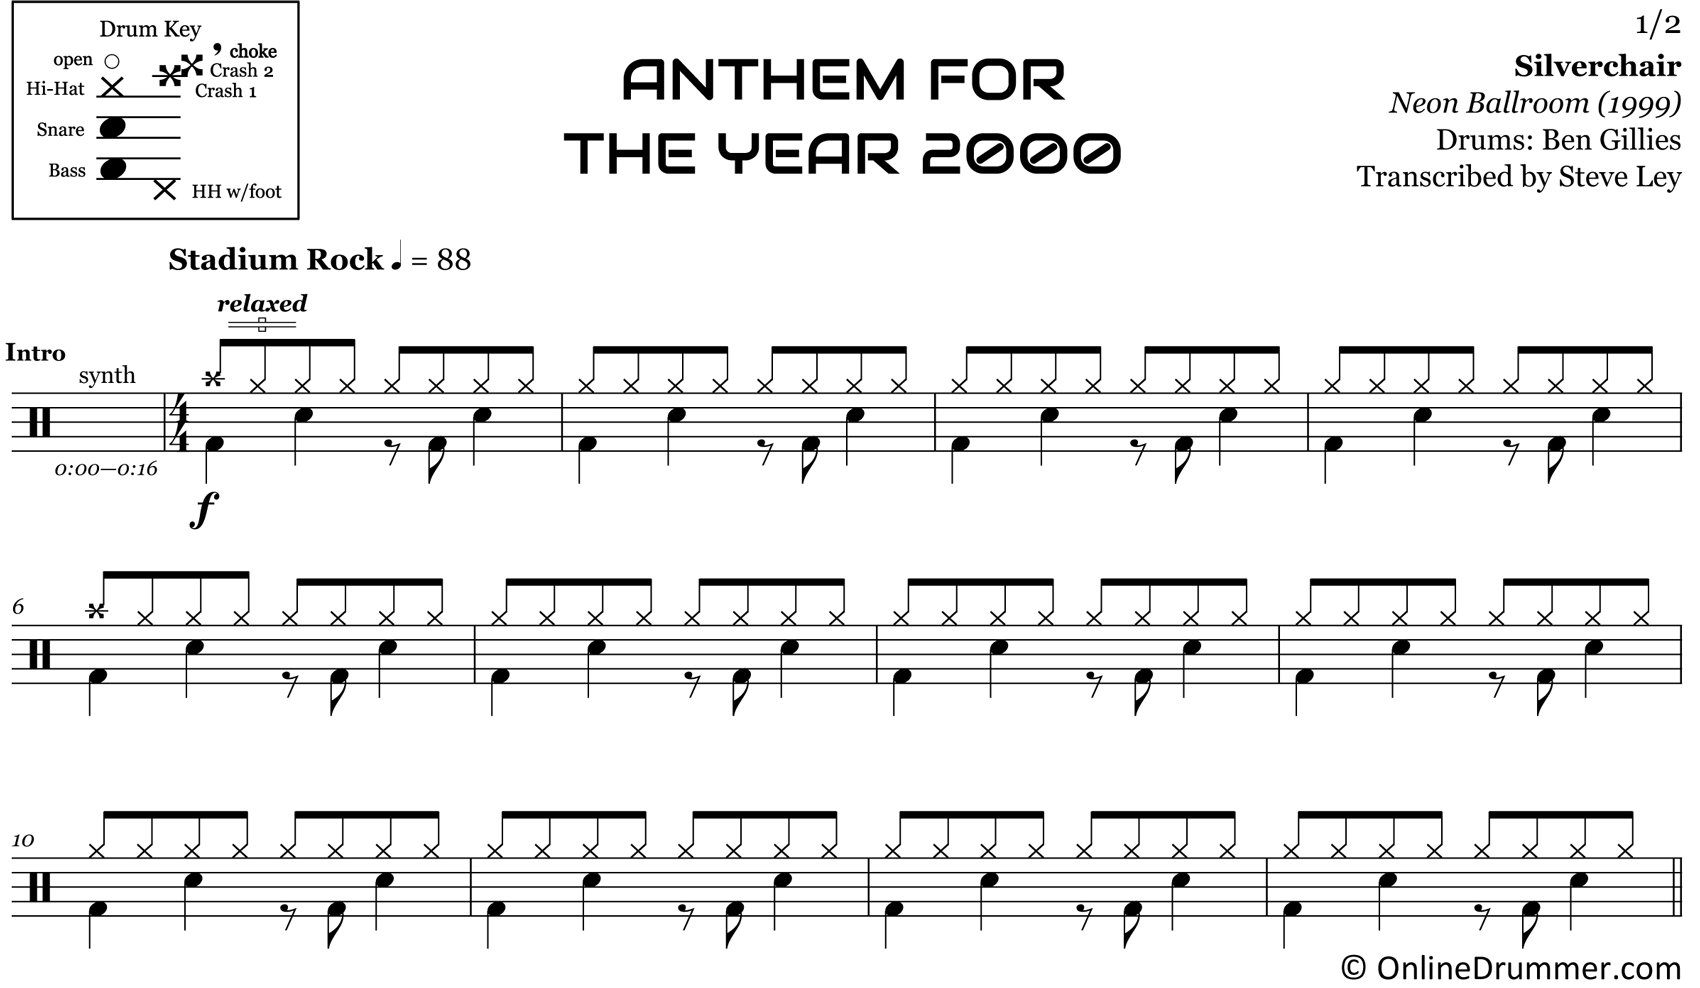 Anthem for the Year 2000 - Silverchair - Drum Sheet Music